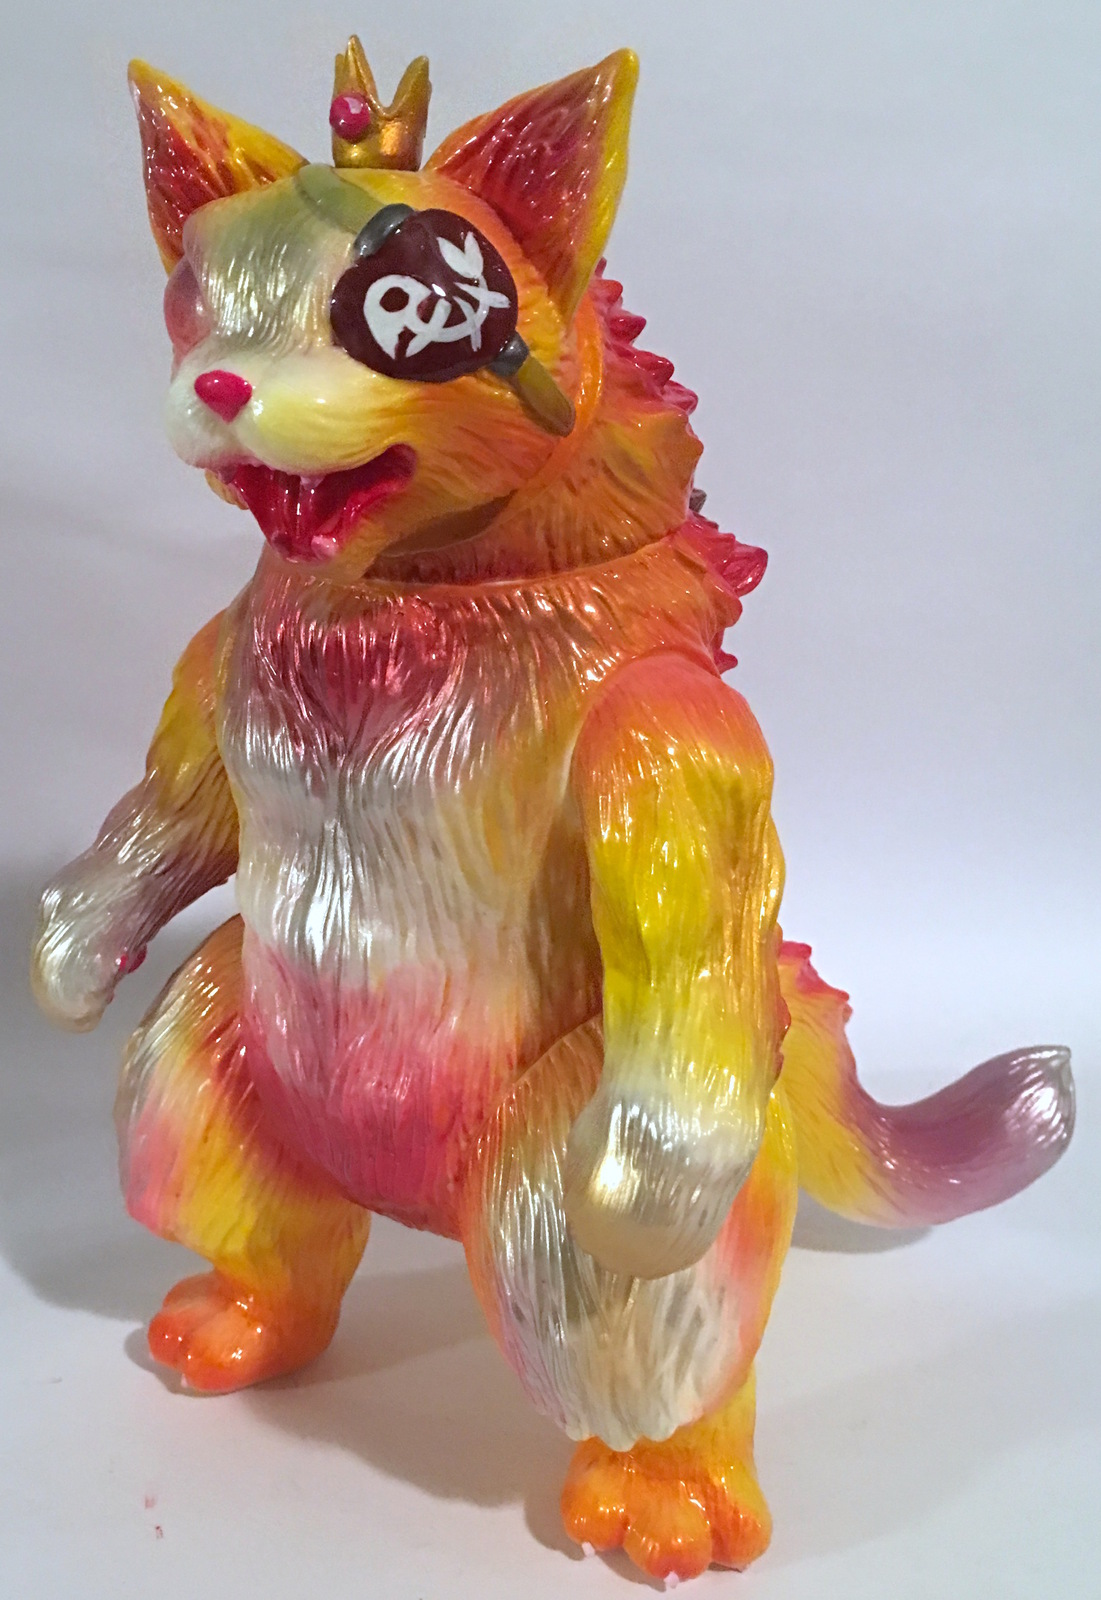 MaxToy King Negora Custom by Javier Jimenez